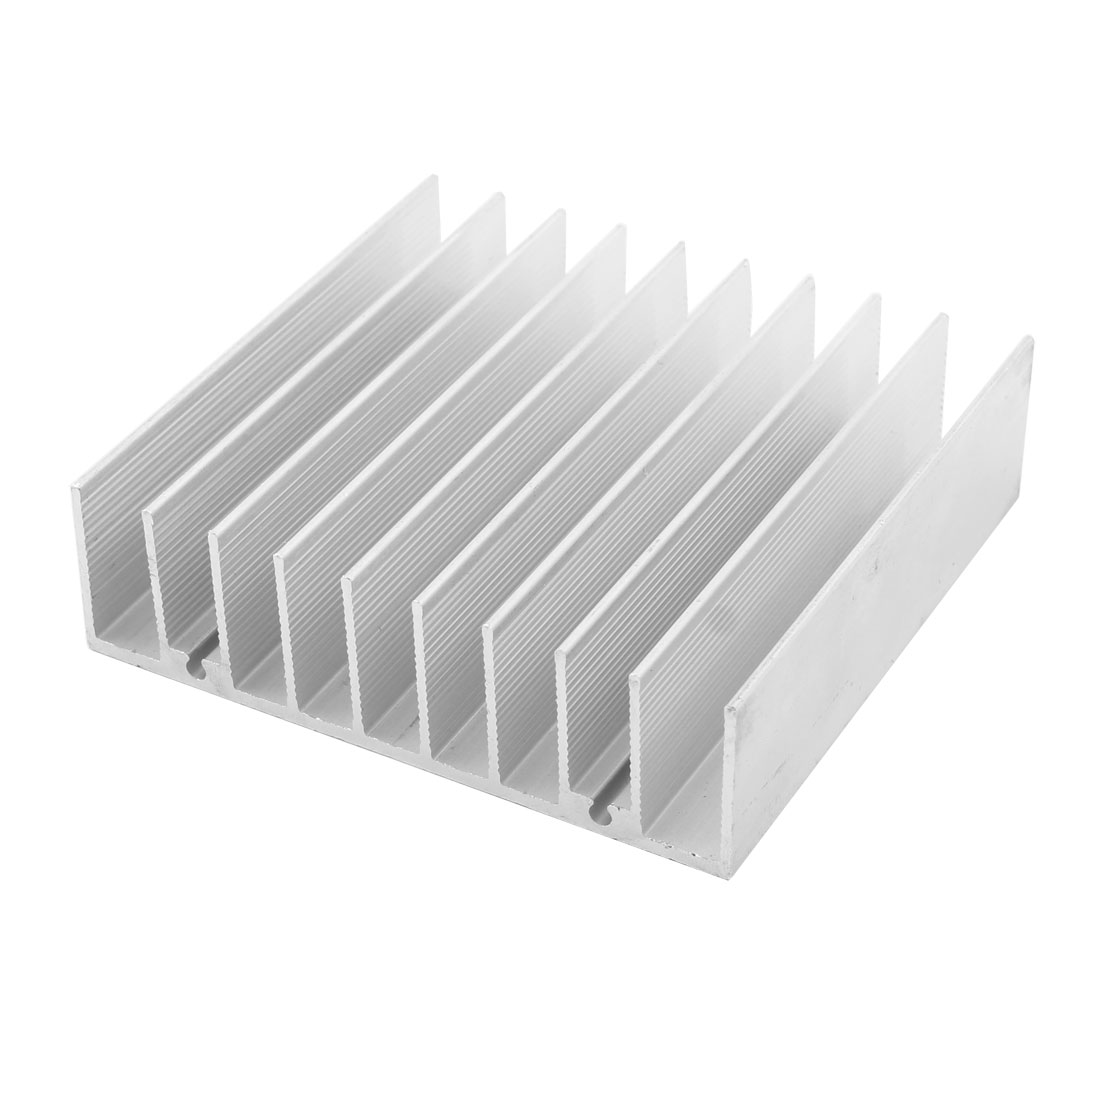 Aluminium Heatsink Diffuse Radiating Dissipation Cooler Cooling Fin 76 x 70 x 21mm